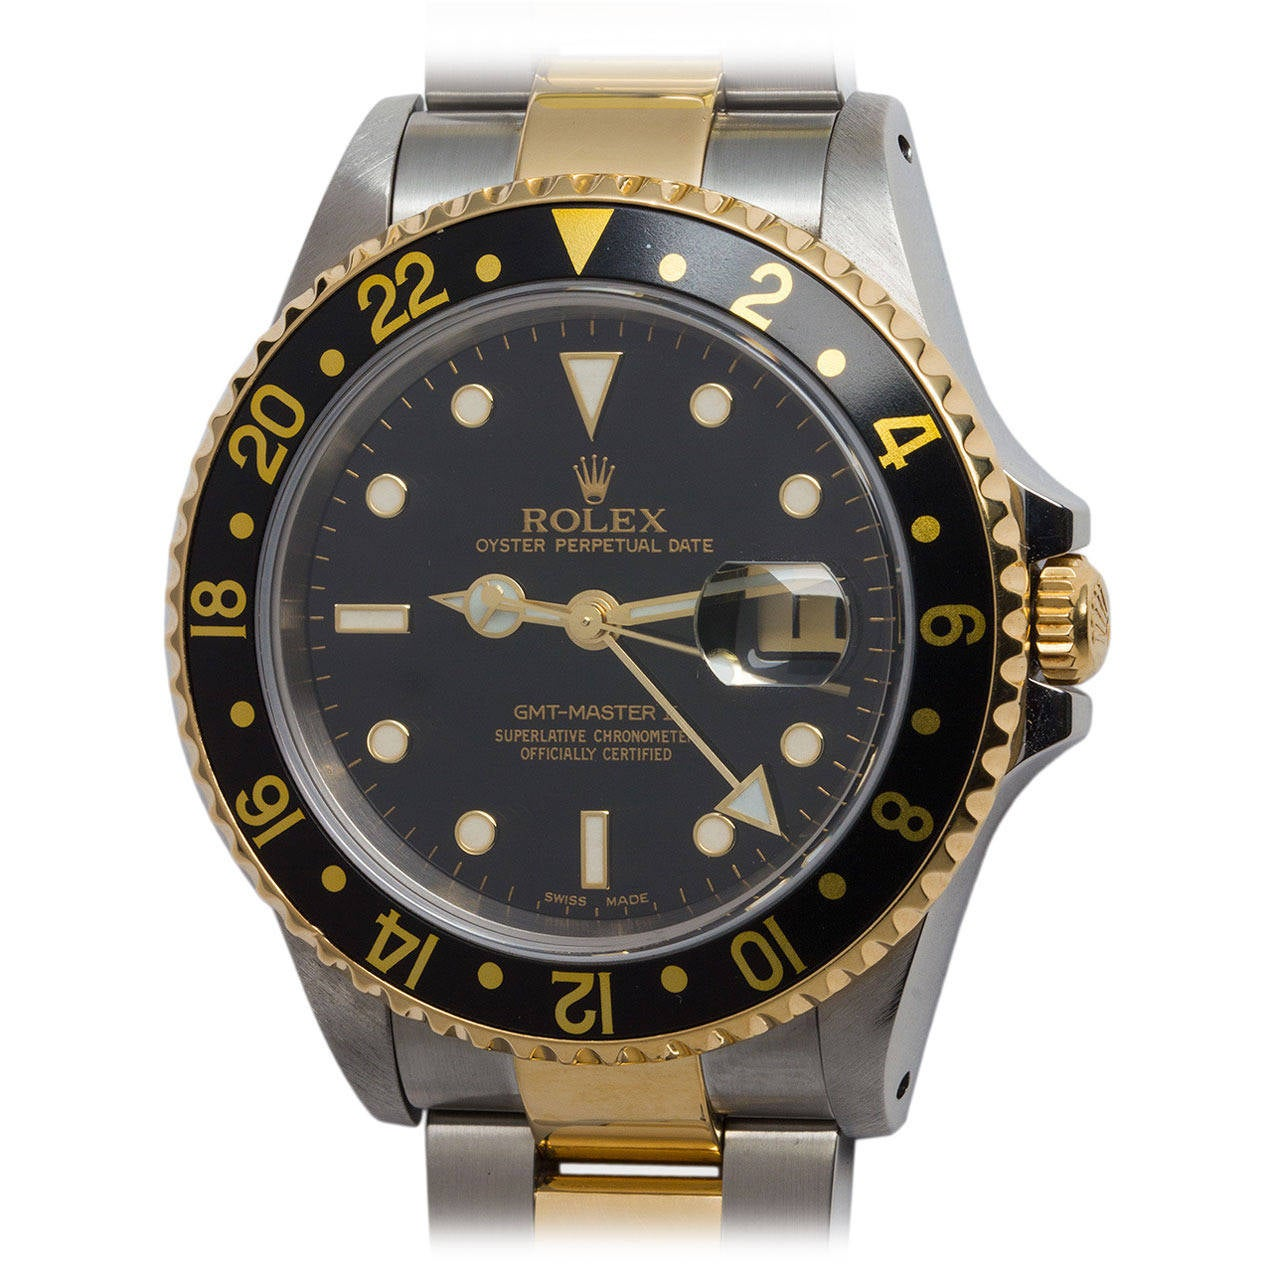 rolex yellow gold stainless steel gmt master ii wristwatch. Black Bedroom Furniture Sets. Home Design Ideas